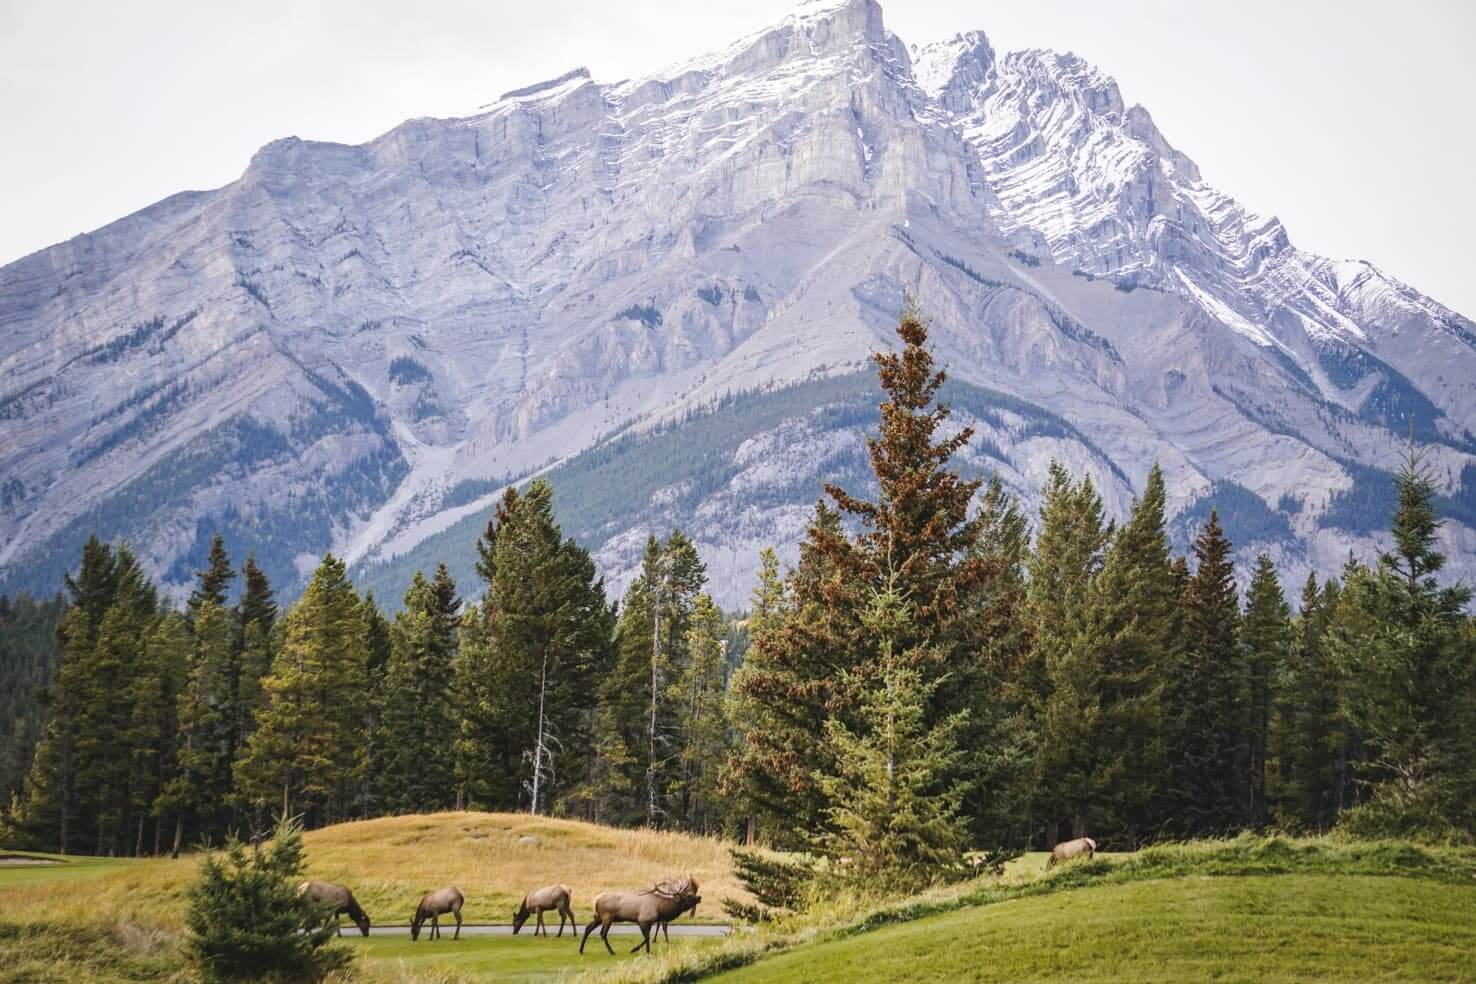 An epic travel guide to the Canadian Rockies - herd of elk